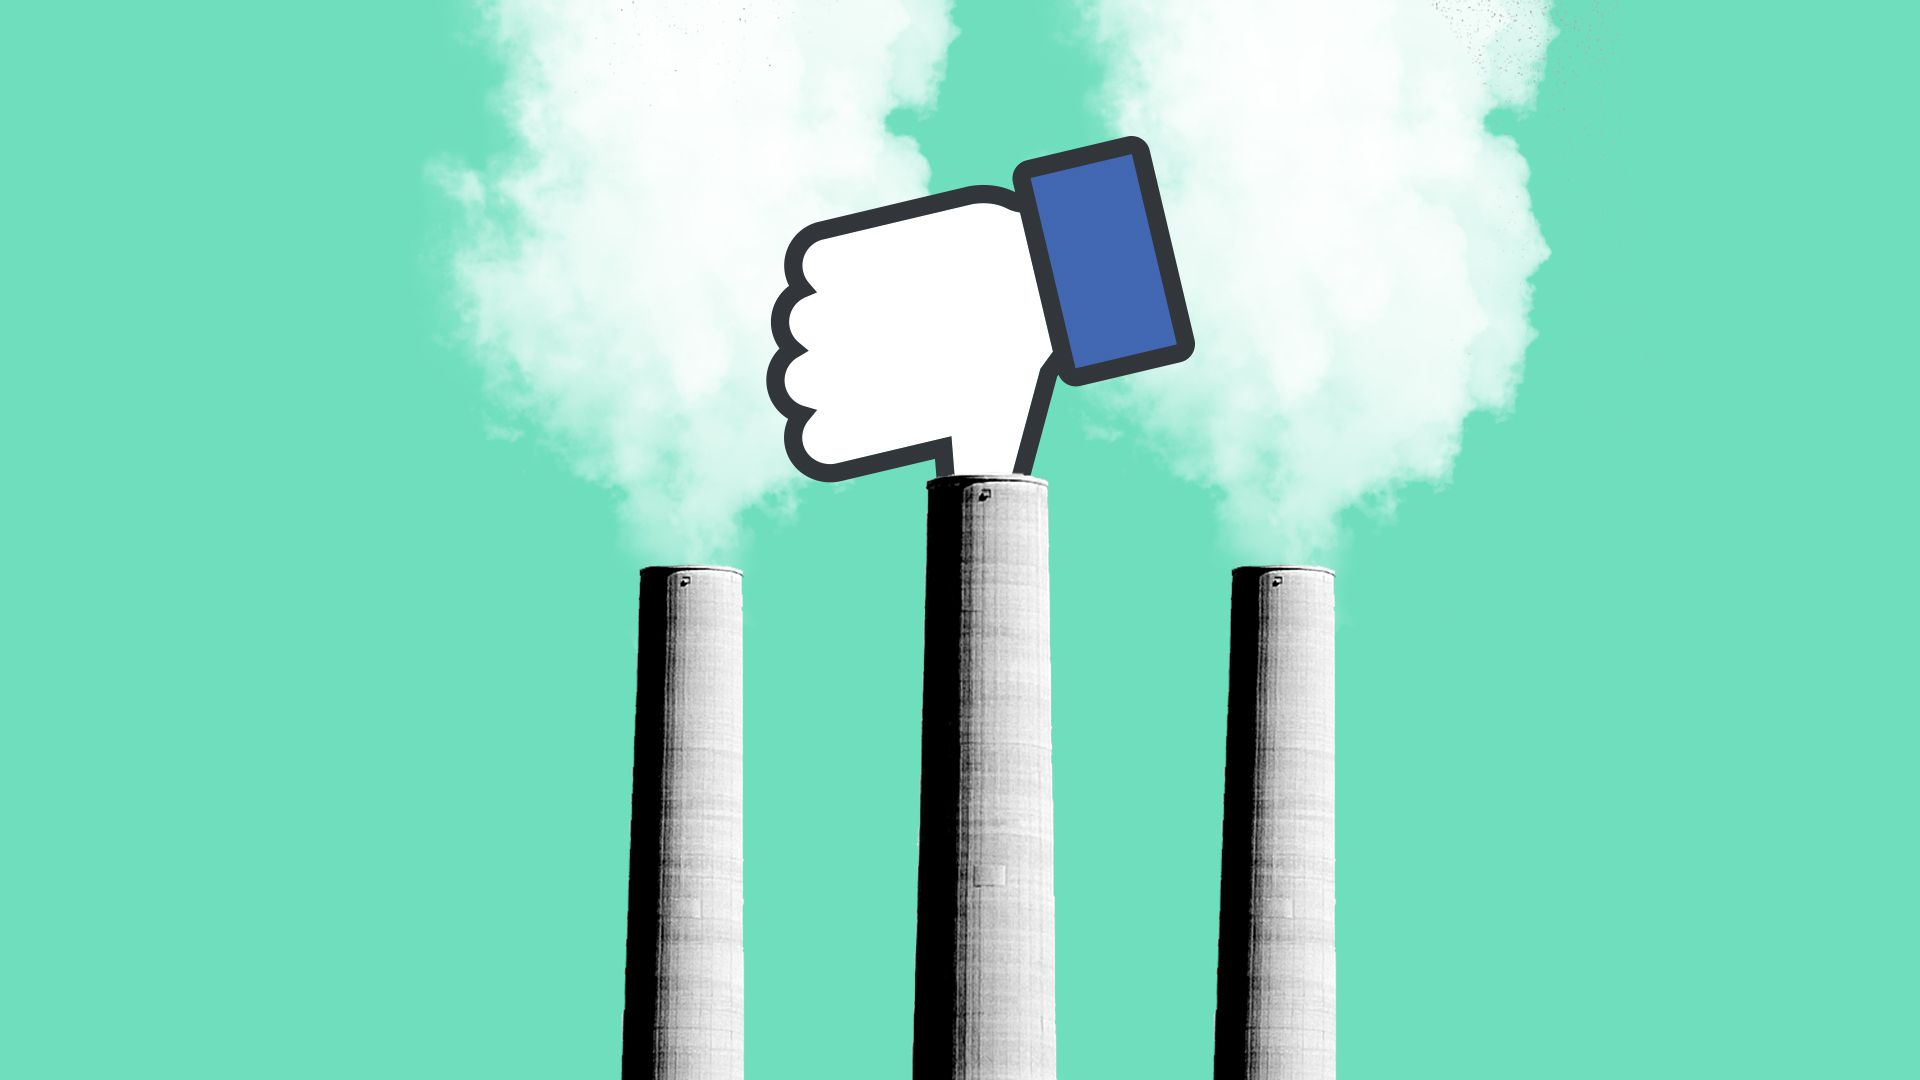 Illustration for story on Facebook pledge to expand its renewable energy use